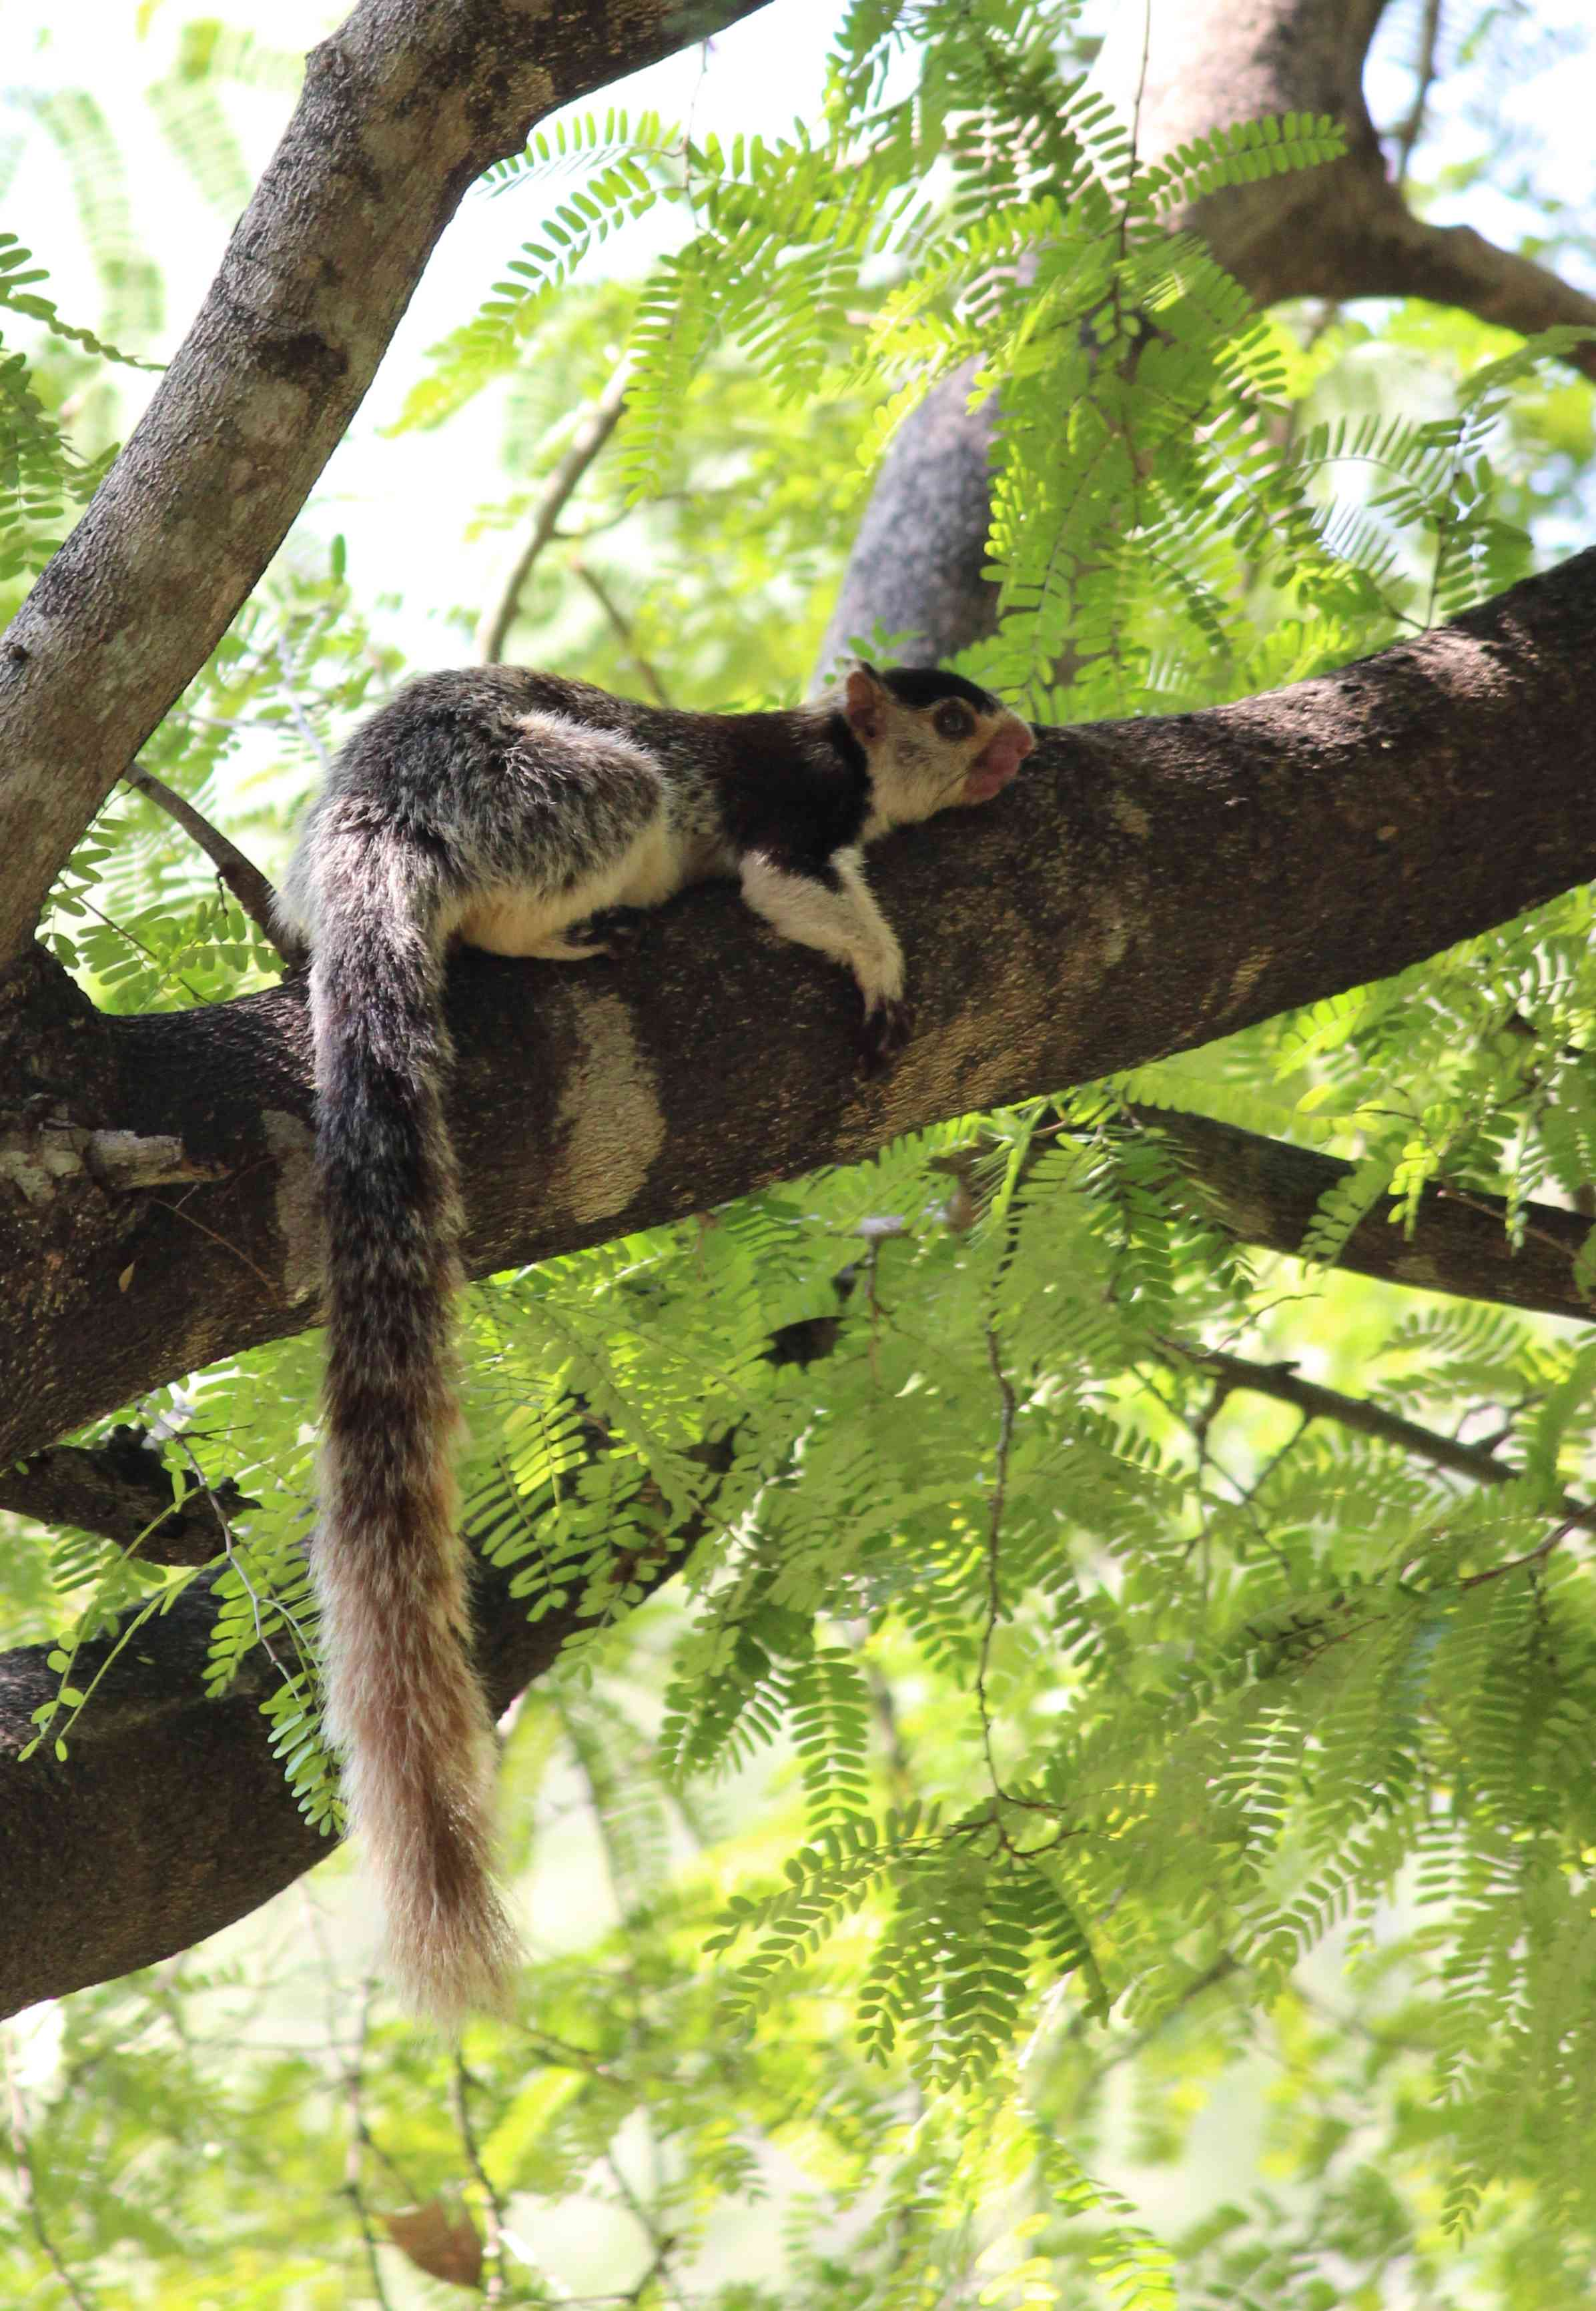 The grizzled giant squirrel(Ratufa macroura), a near threatened species, is found in parts of southern India and Sri Lanka. Photo Credit: Firos AK/Wikimedia Commons [Licensed under CC BY 4.0]